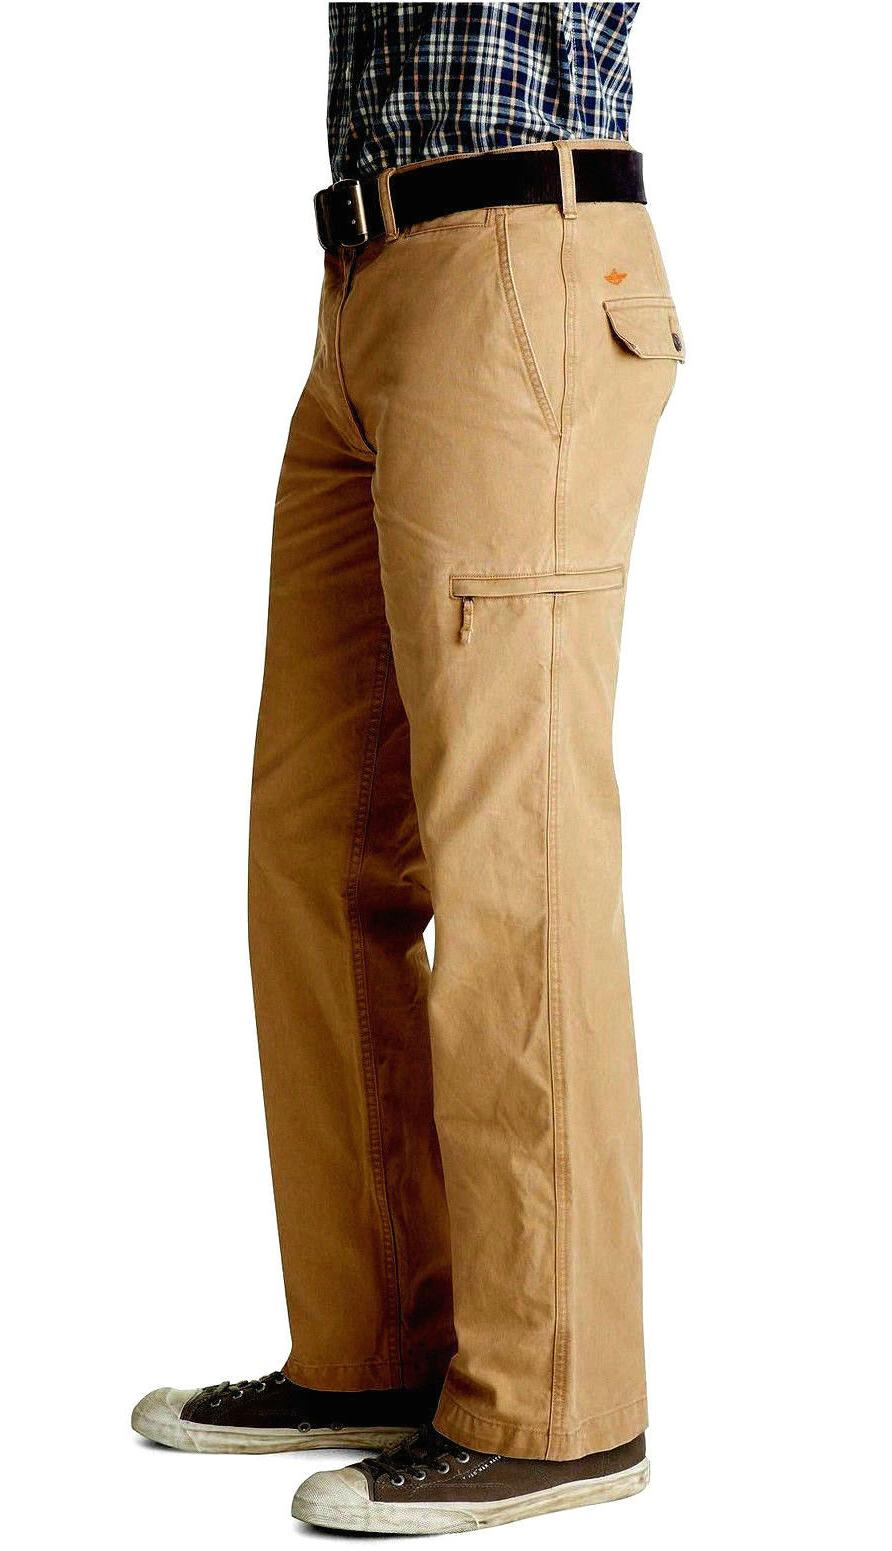 Dockers Cargo Pants 38x30 D3 Classic Fit Khaki Pockets NWT